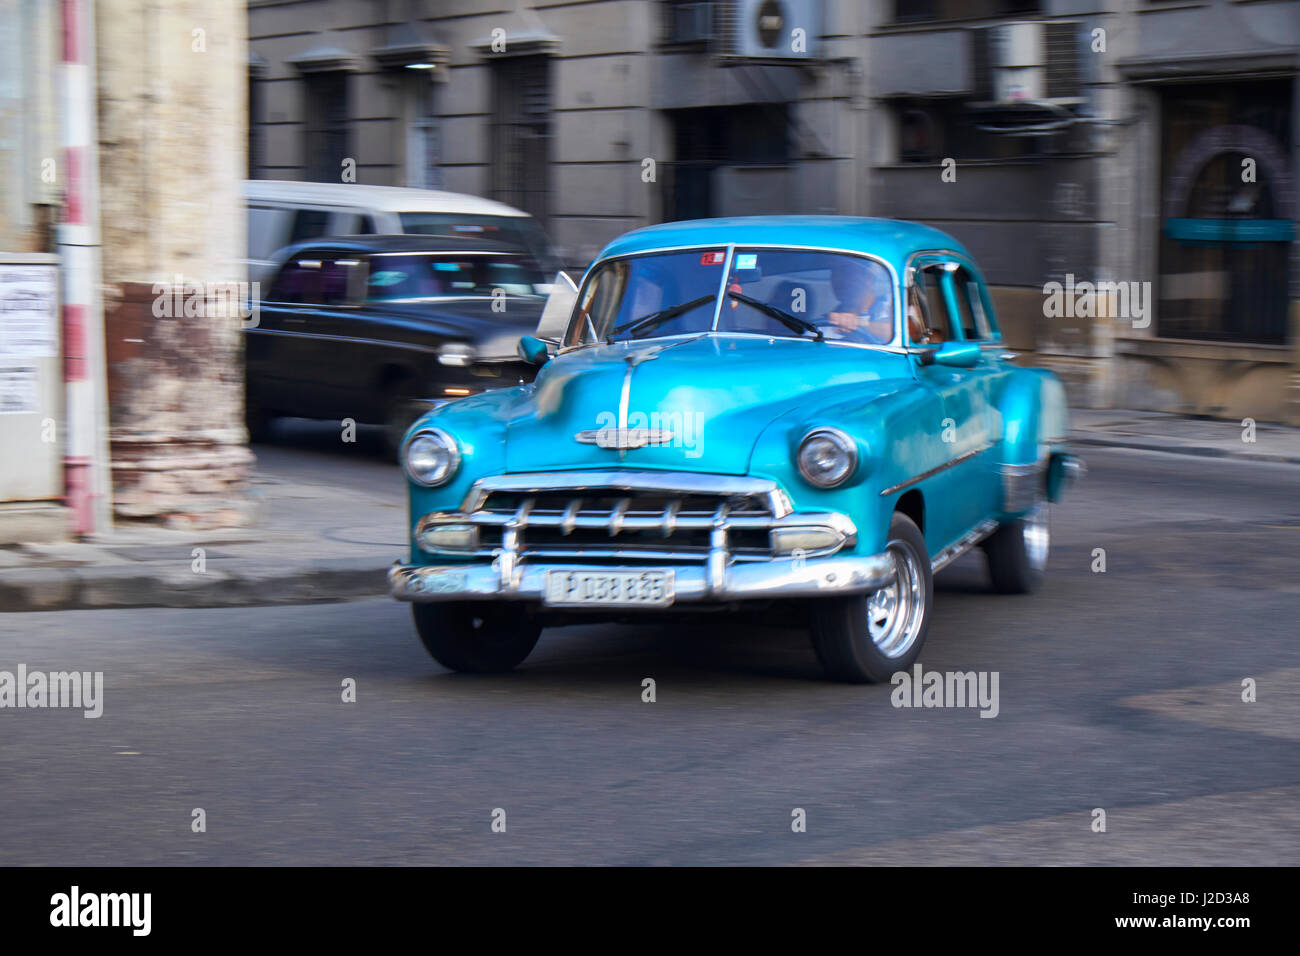 West Indies, Cuba, Havana. Well-preserved vintage car in motion. Credit as: Nancy & Steve Ross / Jaynes Gallery - Stock Image